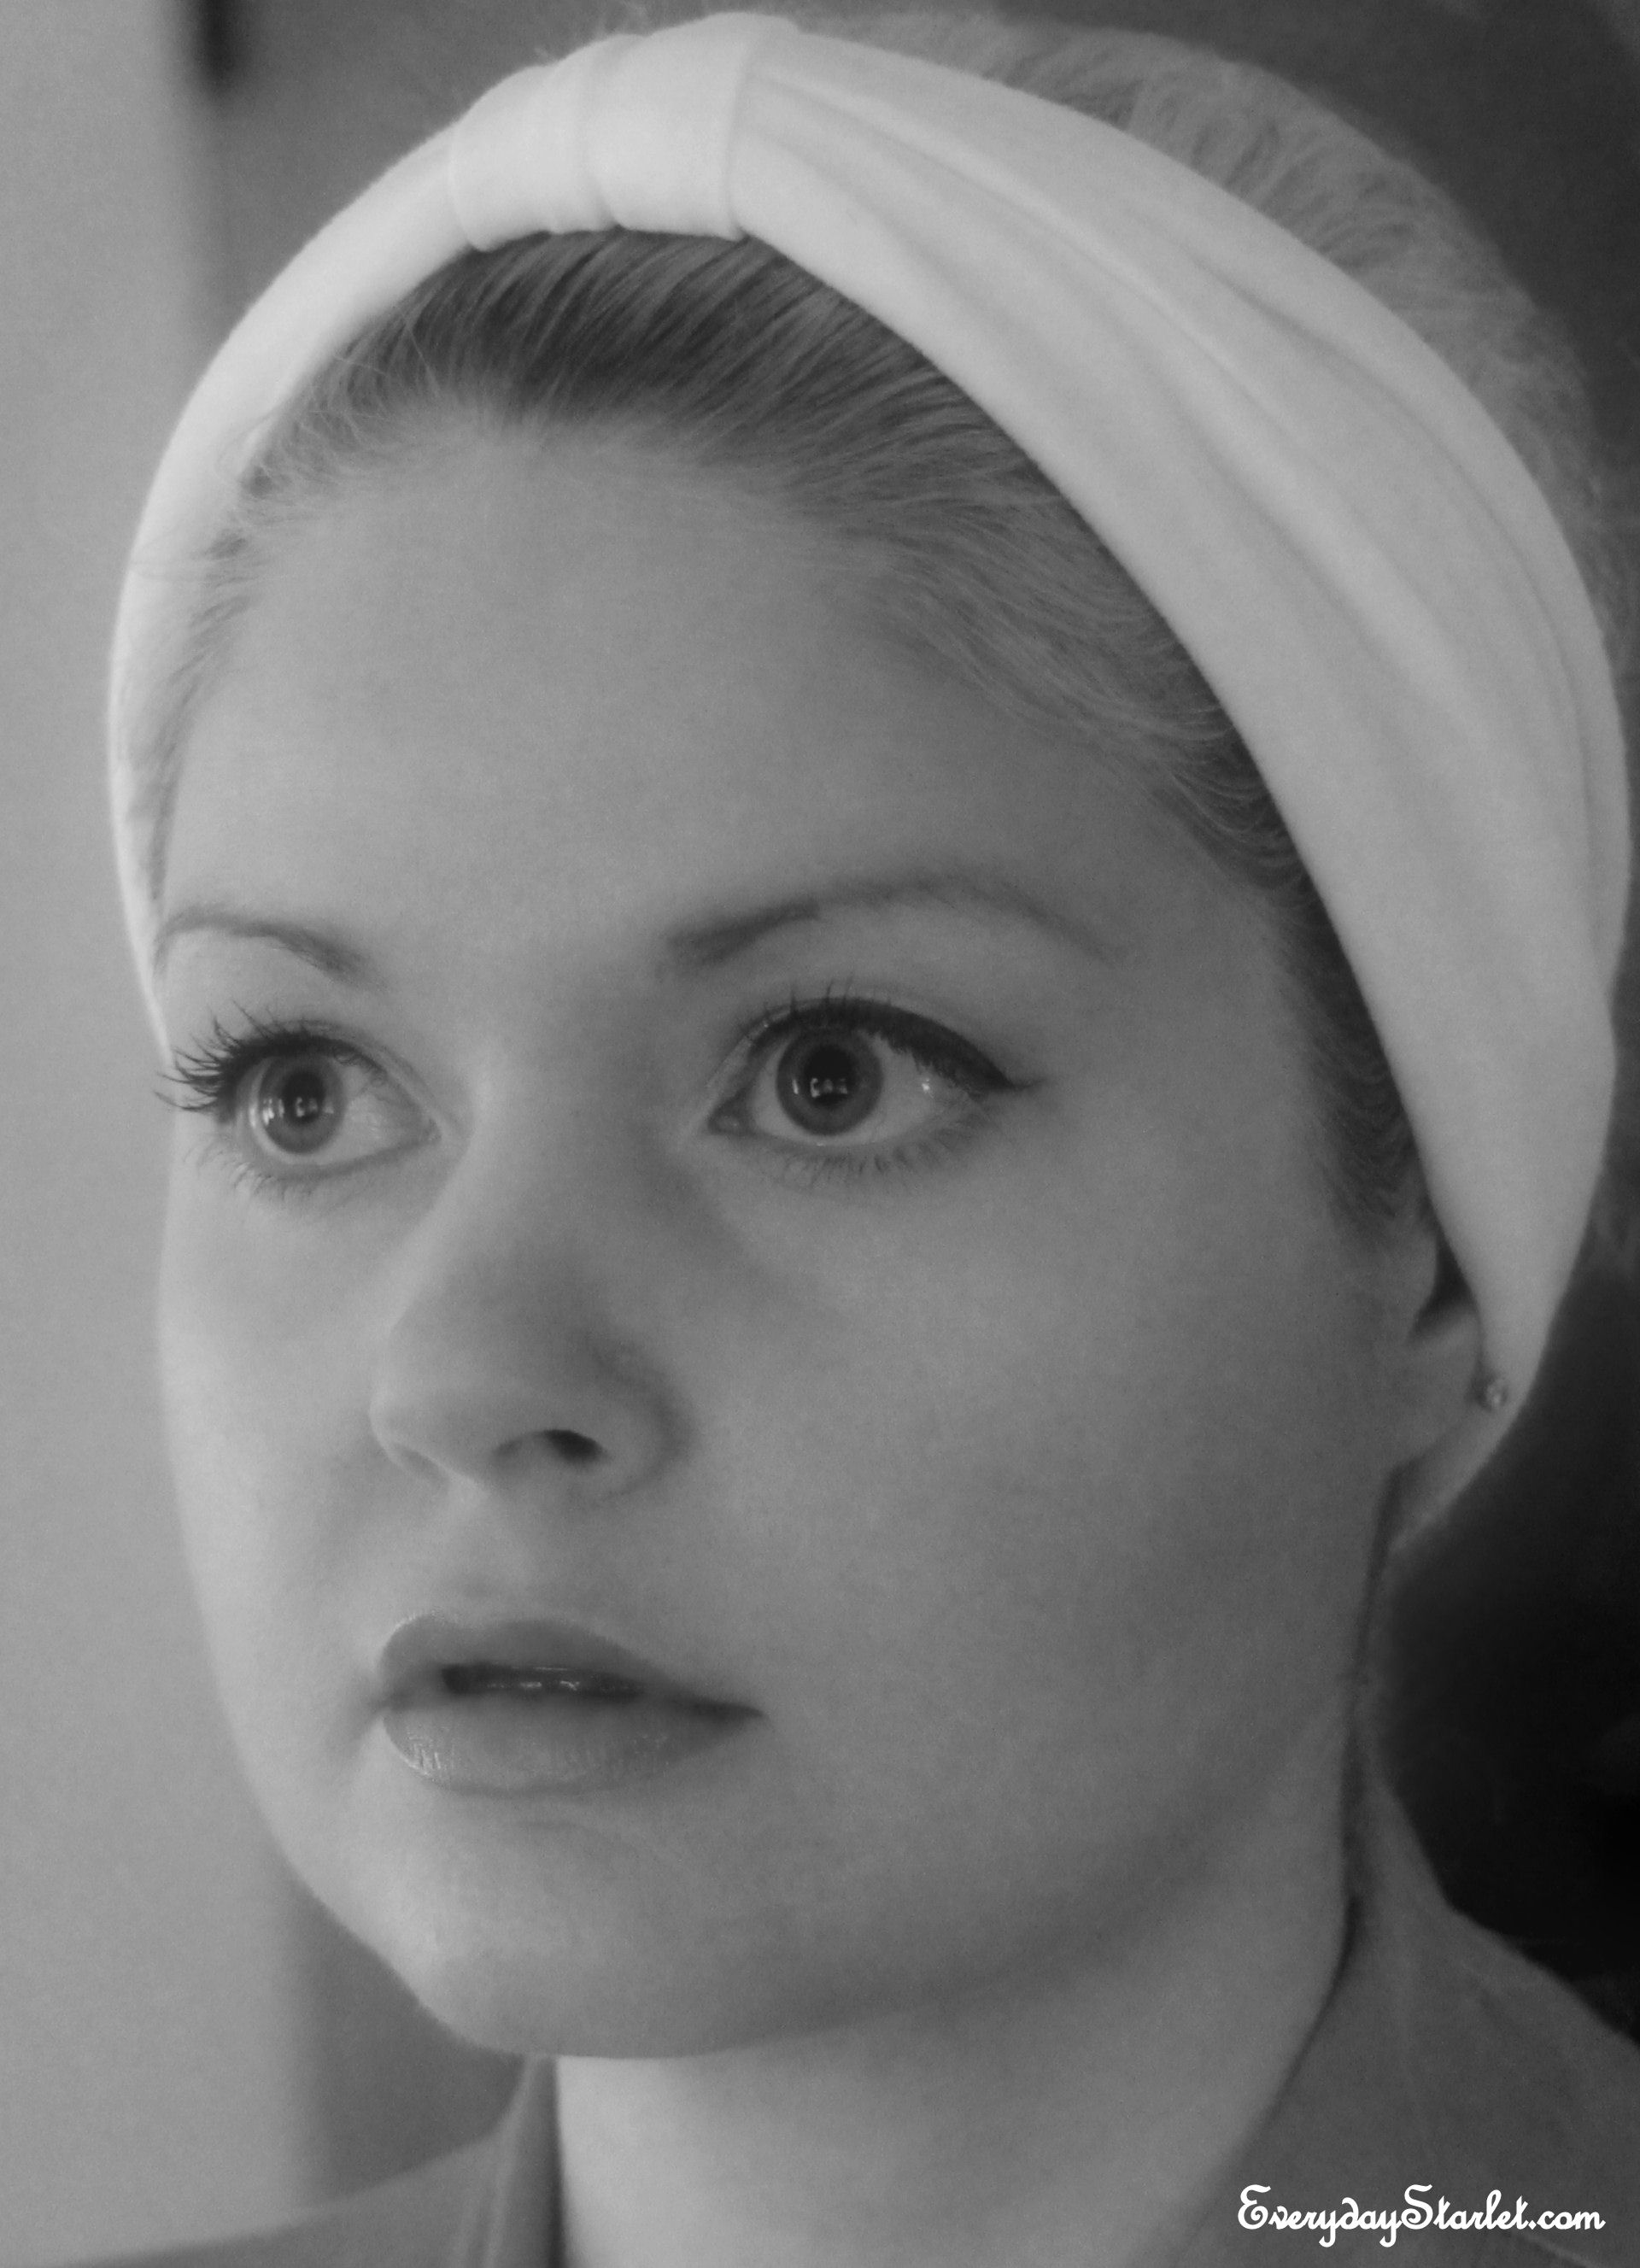 Role Playing Lana Turner in The Postman Always Rings Twice